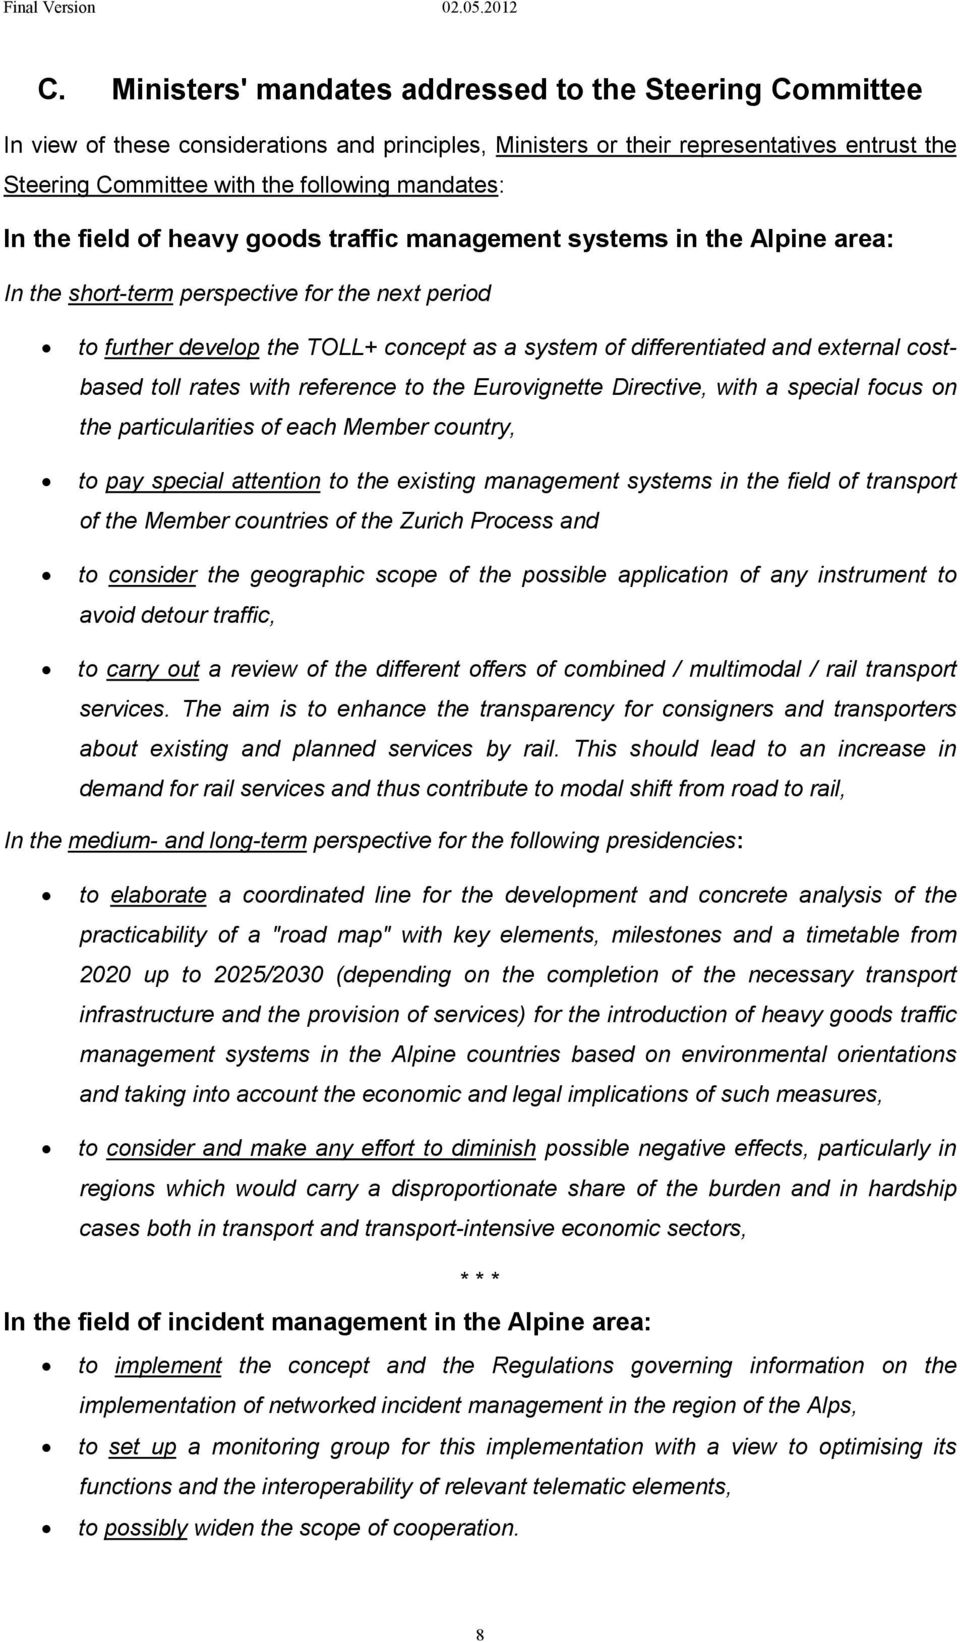 differentiated and external costbased toll rates with reference to the Eurovignette Directive, with a special focus on the particularities of each Member country, to pay special attention to the